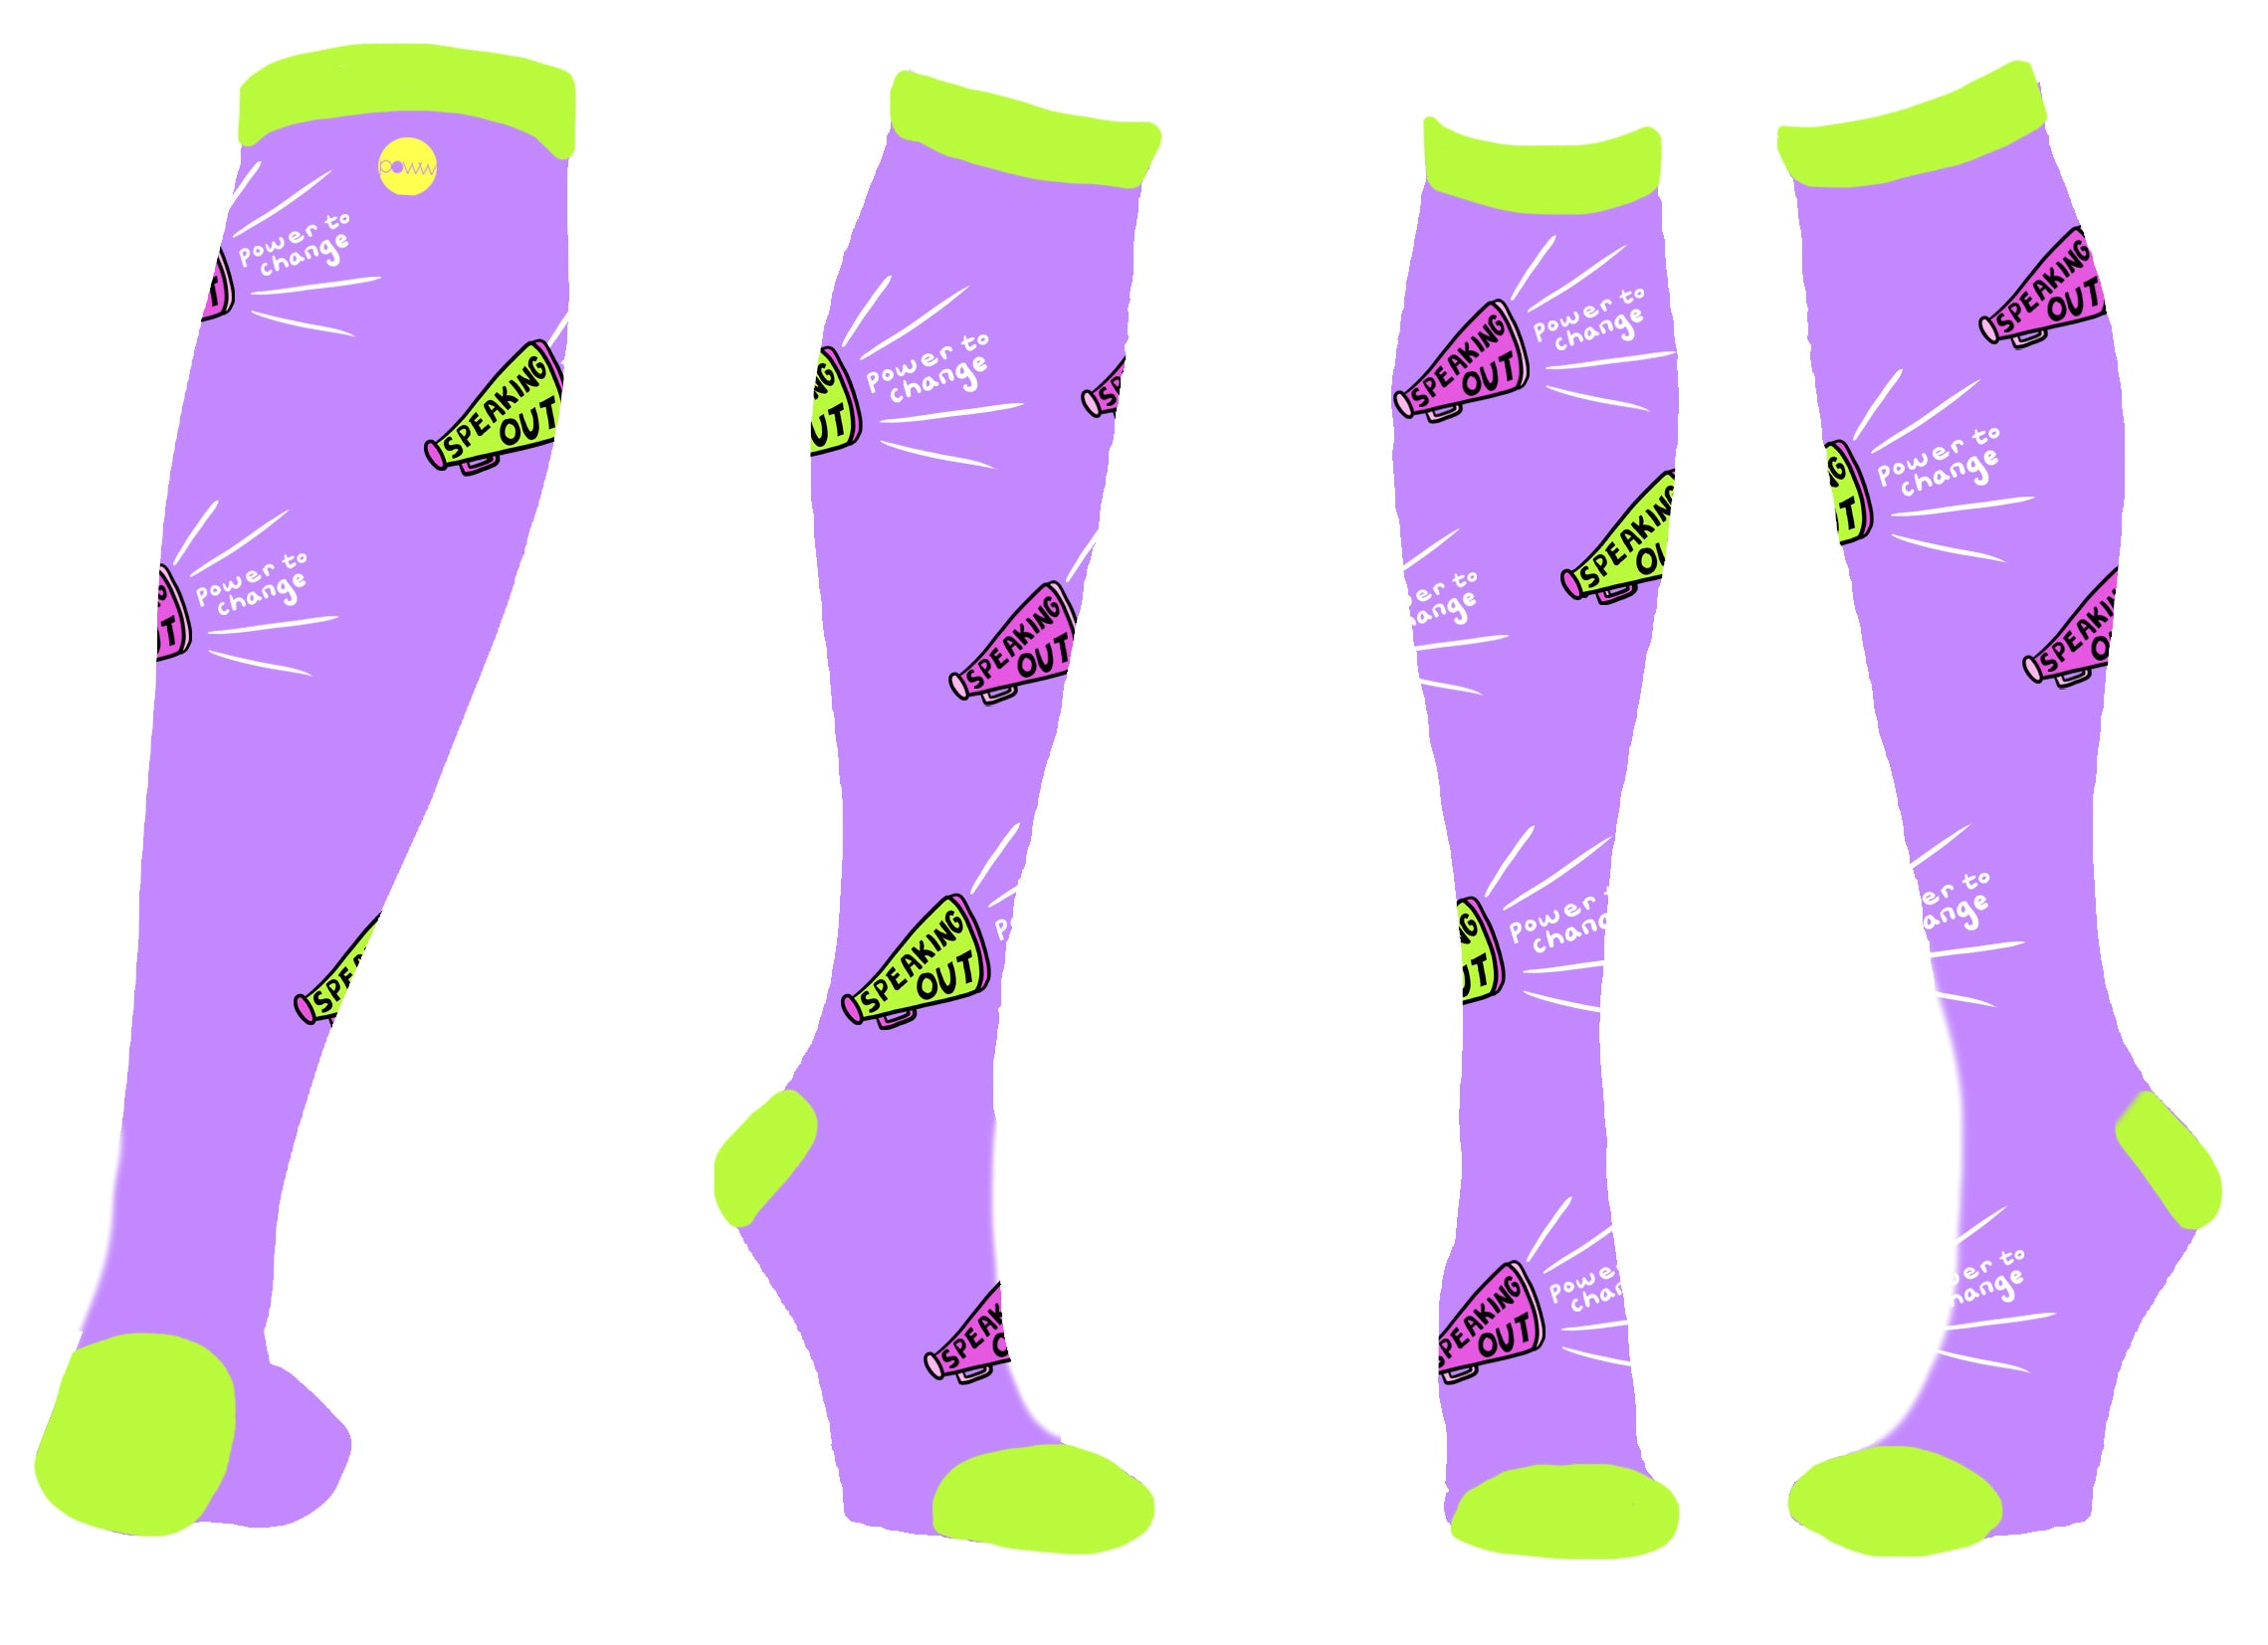 Power Socks - Speaking Out - Design Inspiration